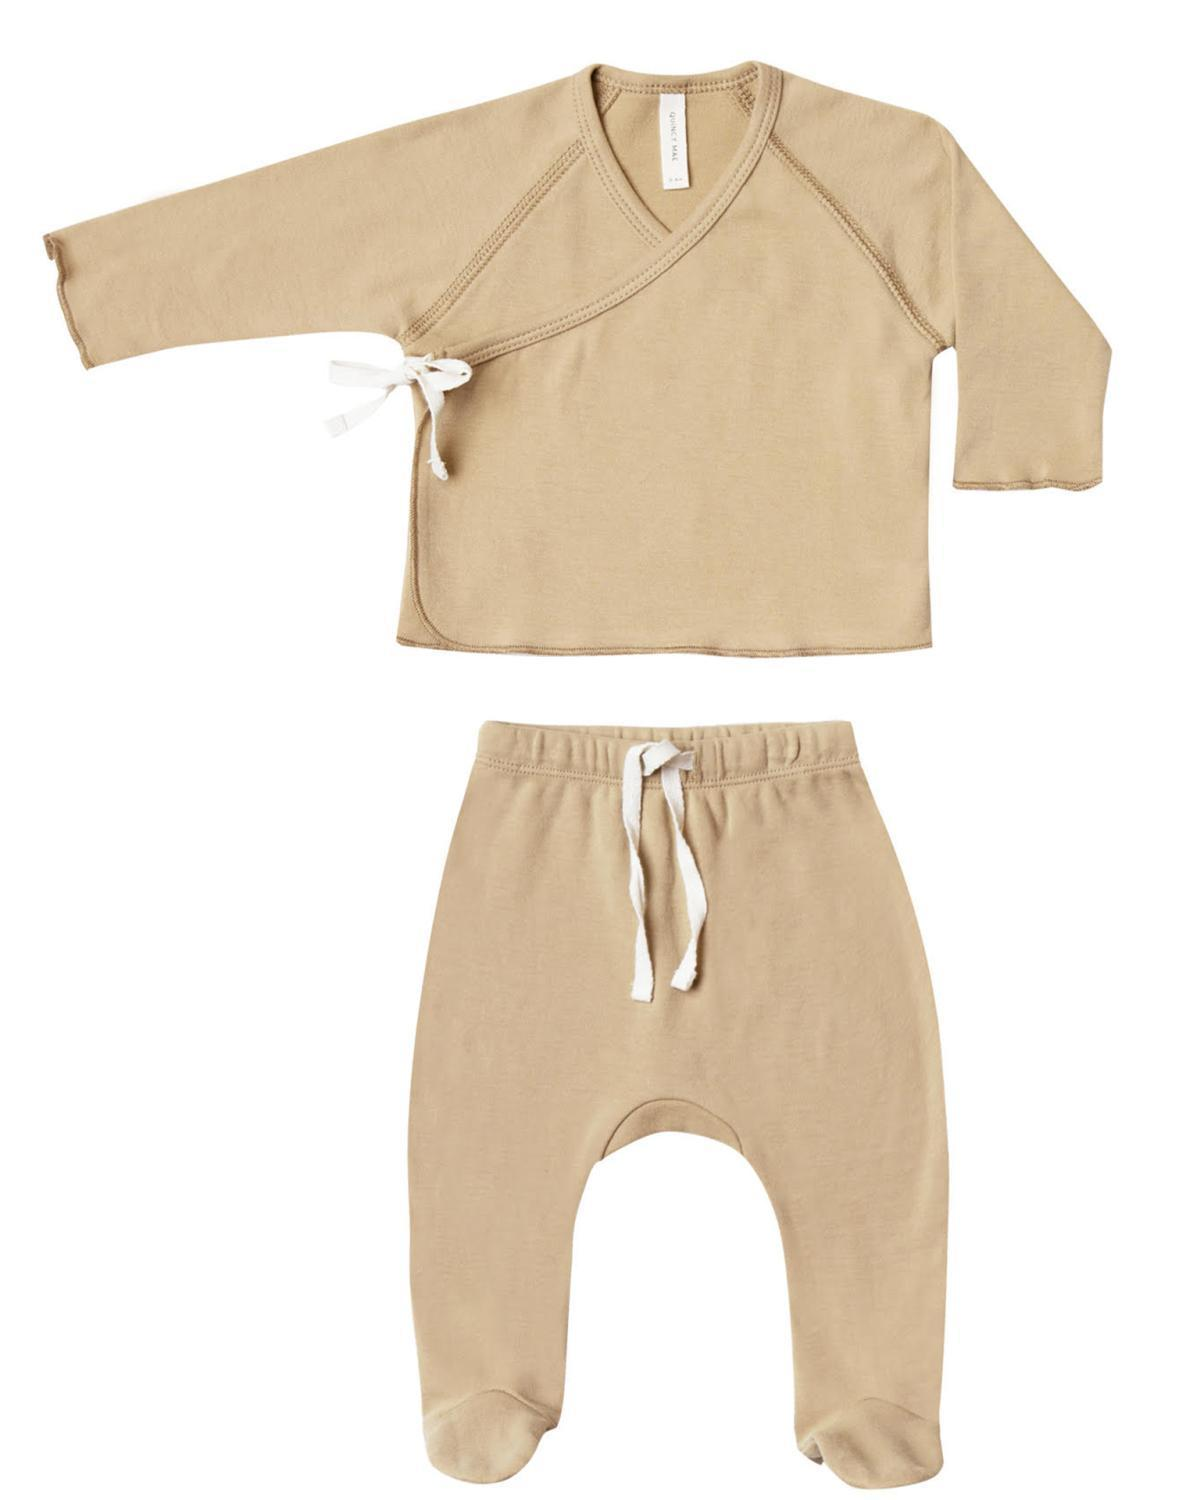 Little quincy mae layette nb kimono top + footed pant set in honey